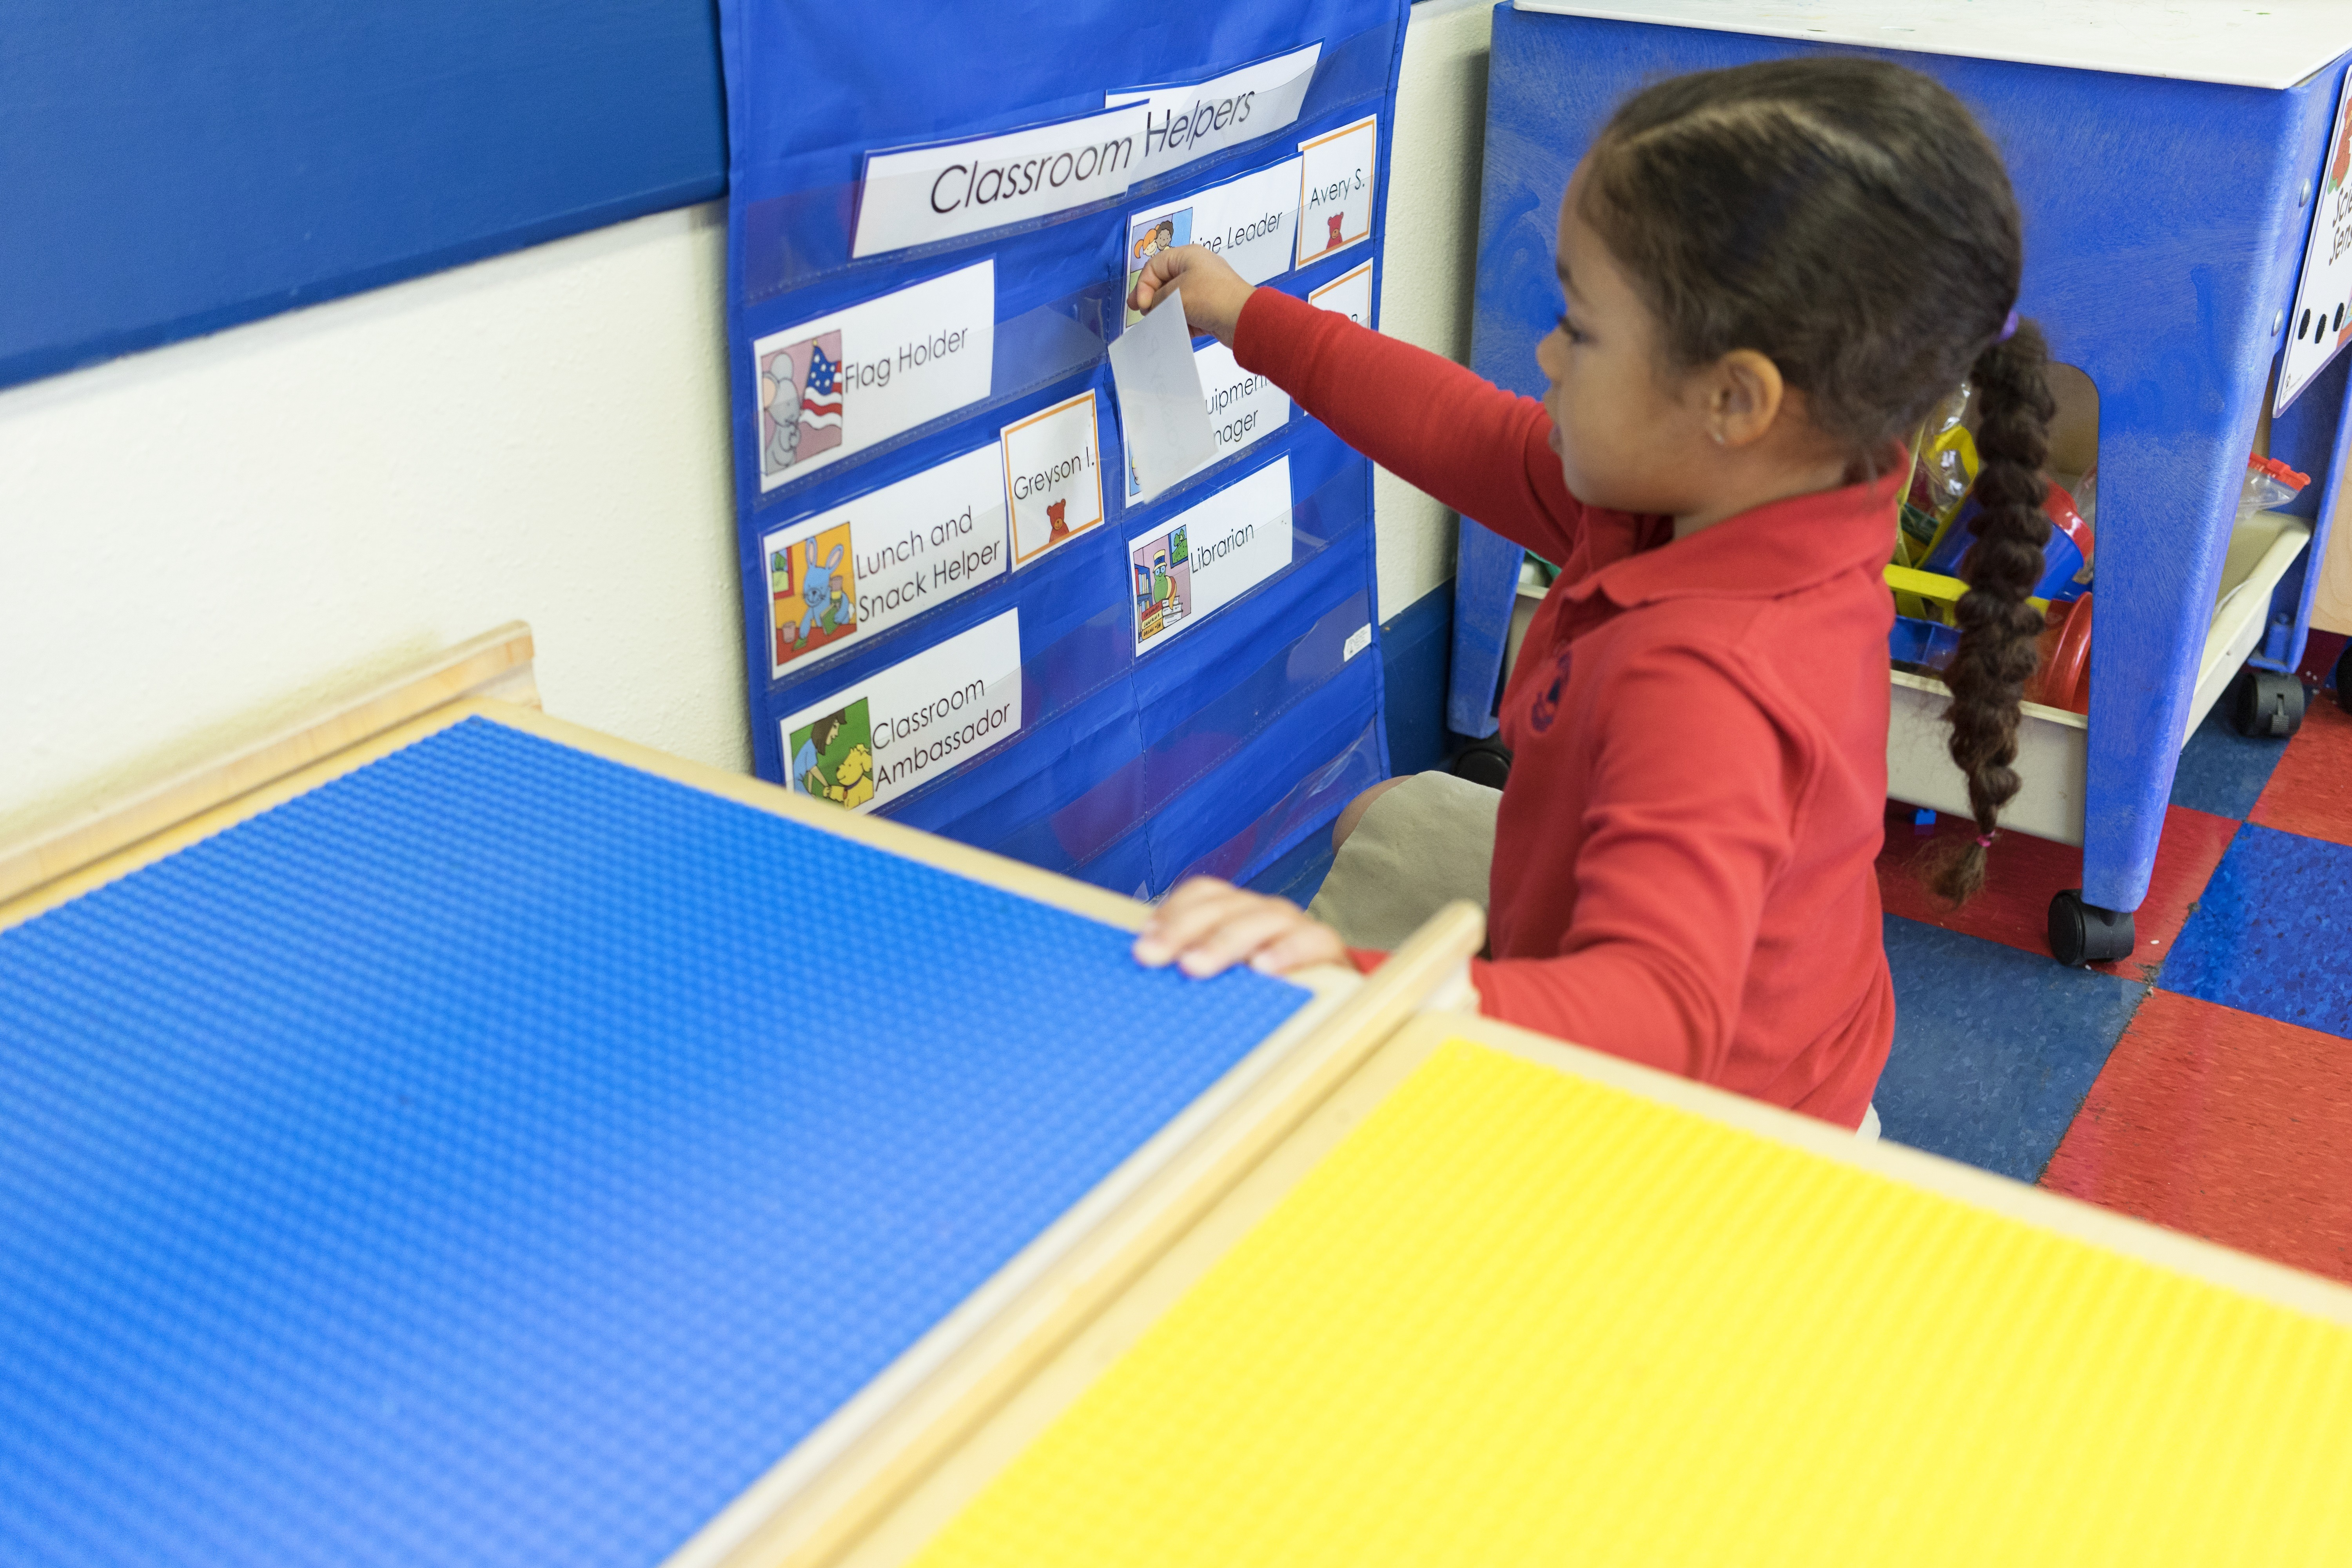 responsibility chart helper classroom education learning student child